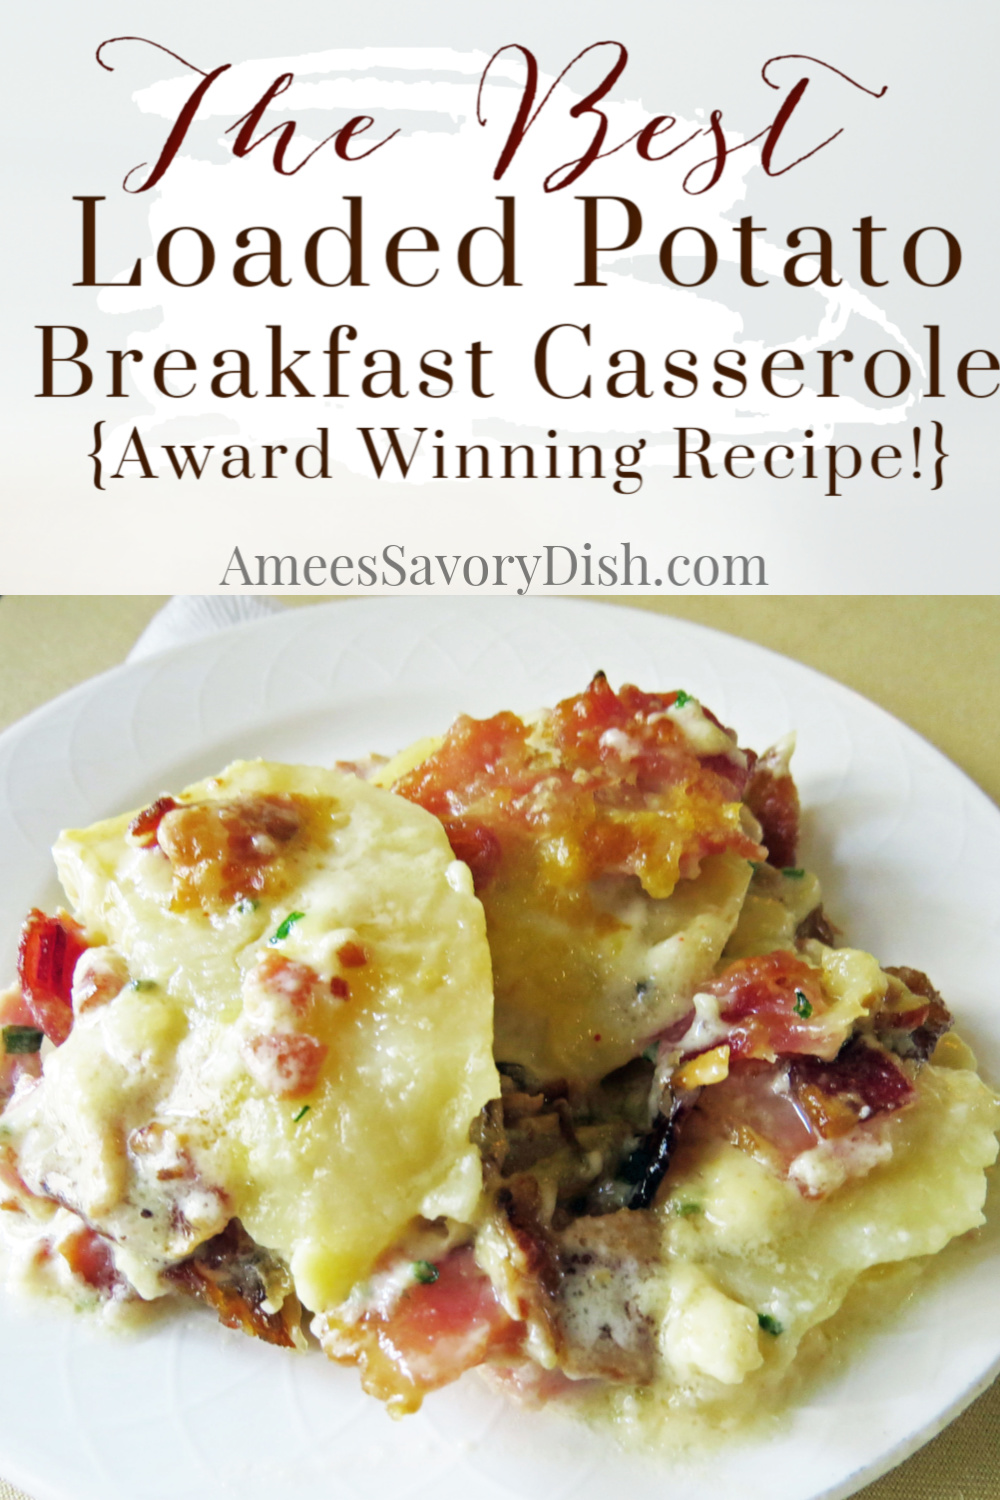 Loaded potato breakfast casserole is an easy casserole recipe, perfect any time of day! This award-winning recipe is loaded potatoes with a breakfast twist! #breakfastcasserole #potatocasserole #casserole via @Ameecooks